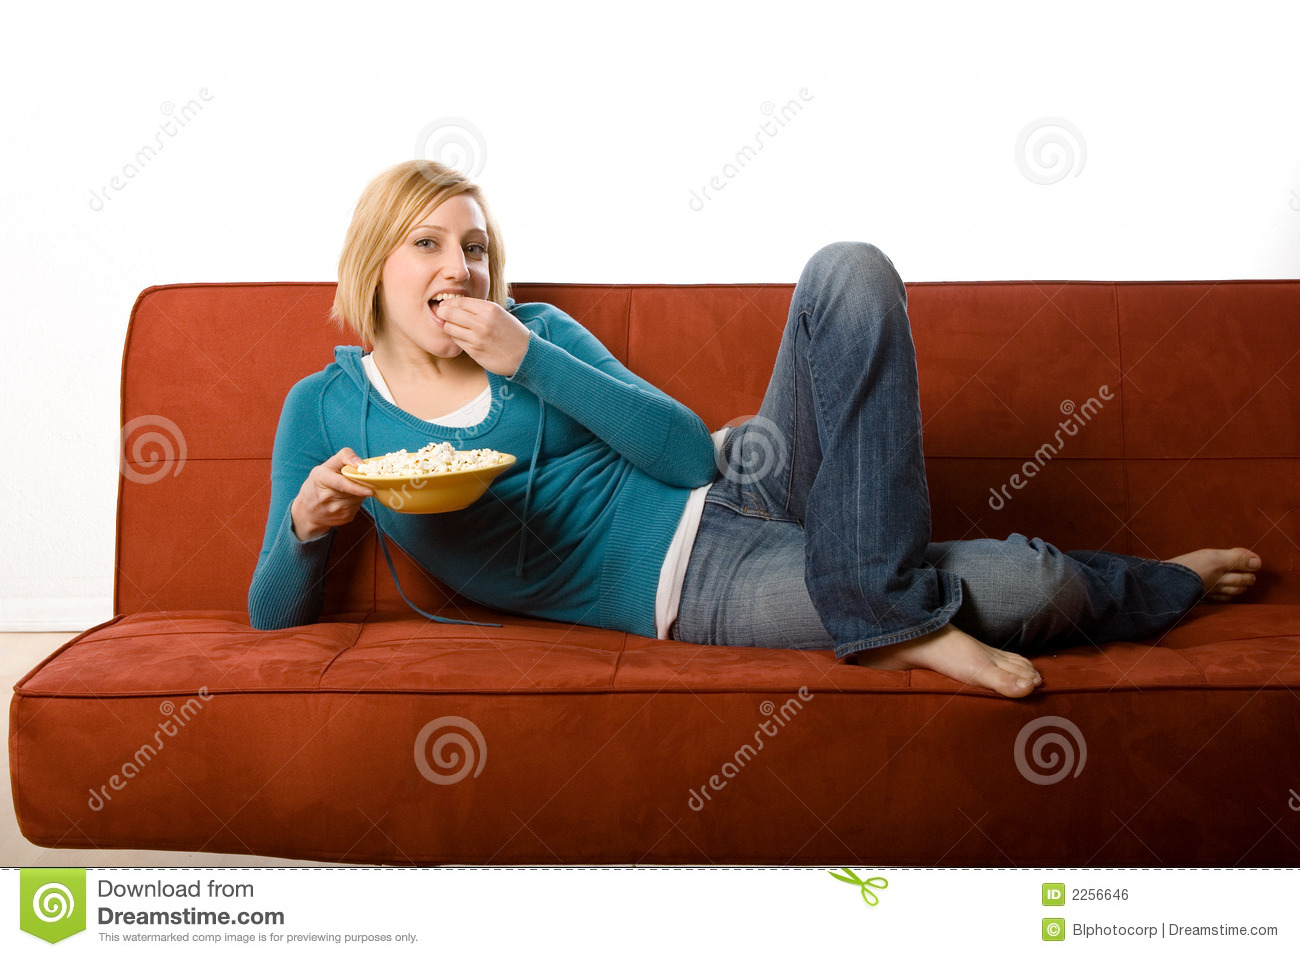 Woman Eating On Couch Stock Photo Image Of Bare Lady